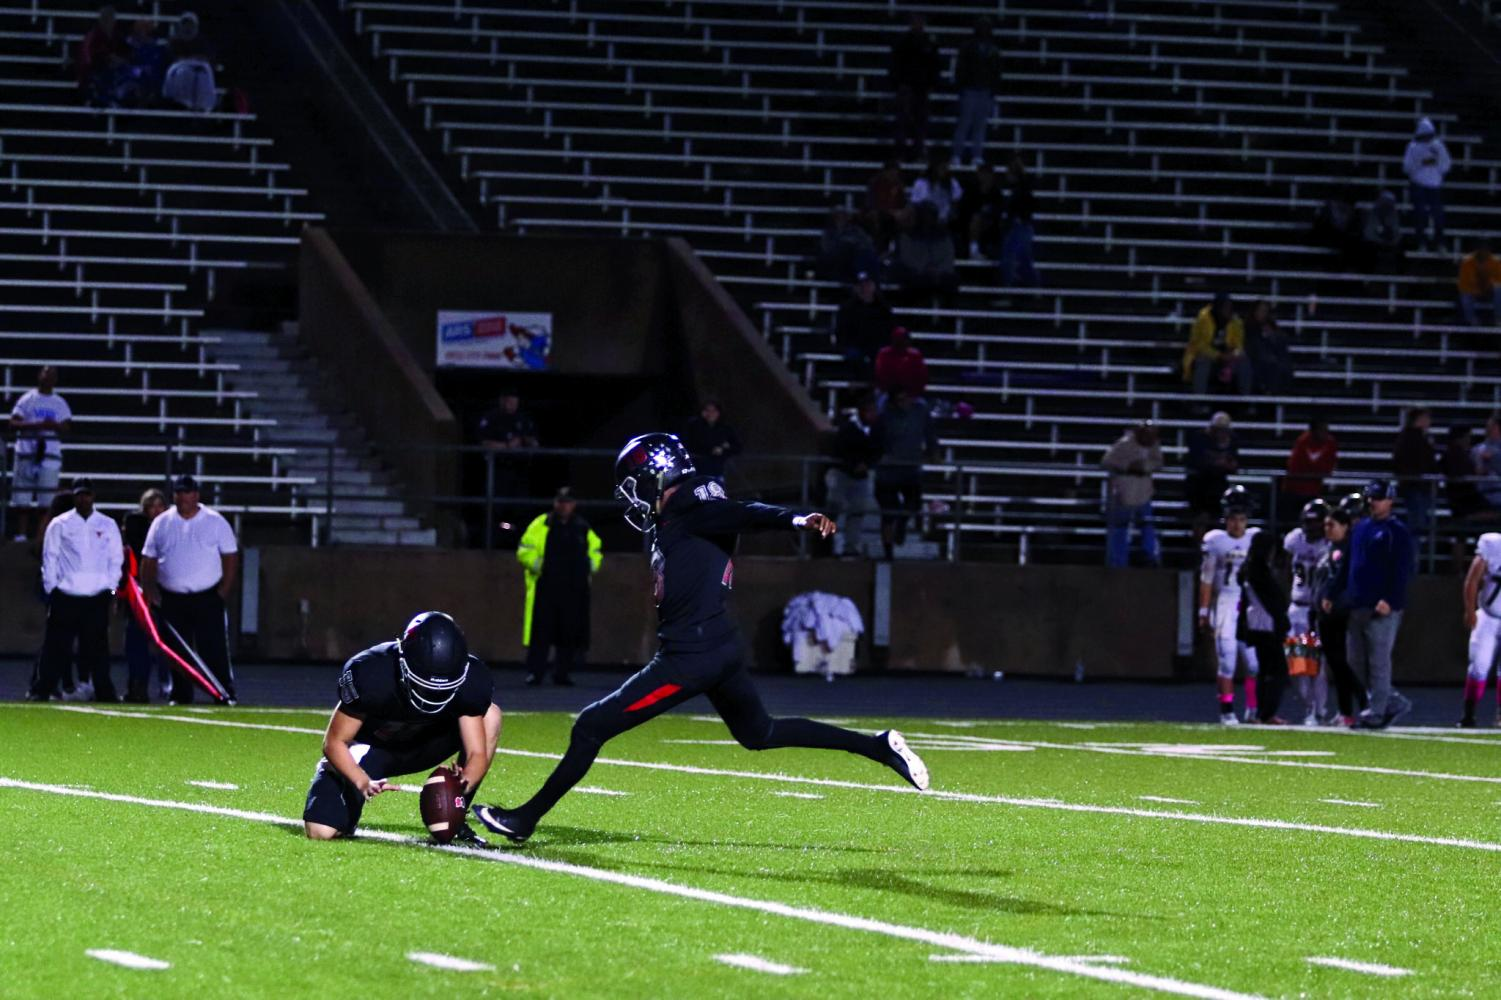 HERE'S THE KICKER: Sophomore Josh McCormick kicks a field goal as senior Aiden Ellisor holds the ball in place. McCormick, Ellisor, and the Bowie Bulldogs won the game against  the Akins Eagles 49-29 with McCormick drilling seven extra points to stay perfect this season.